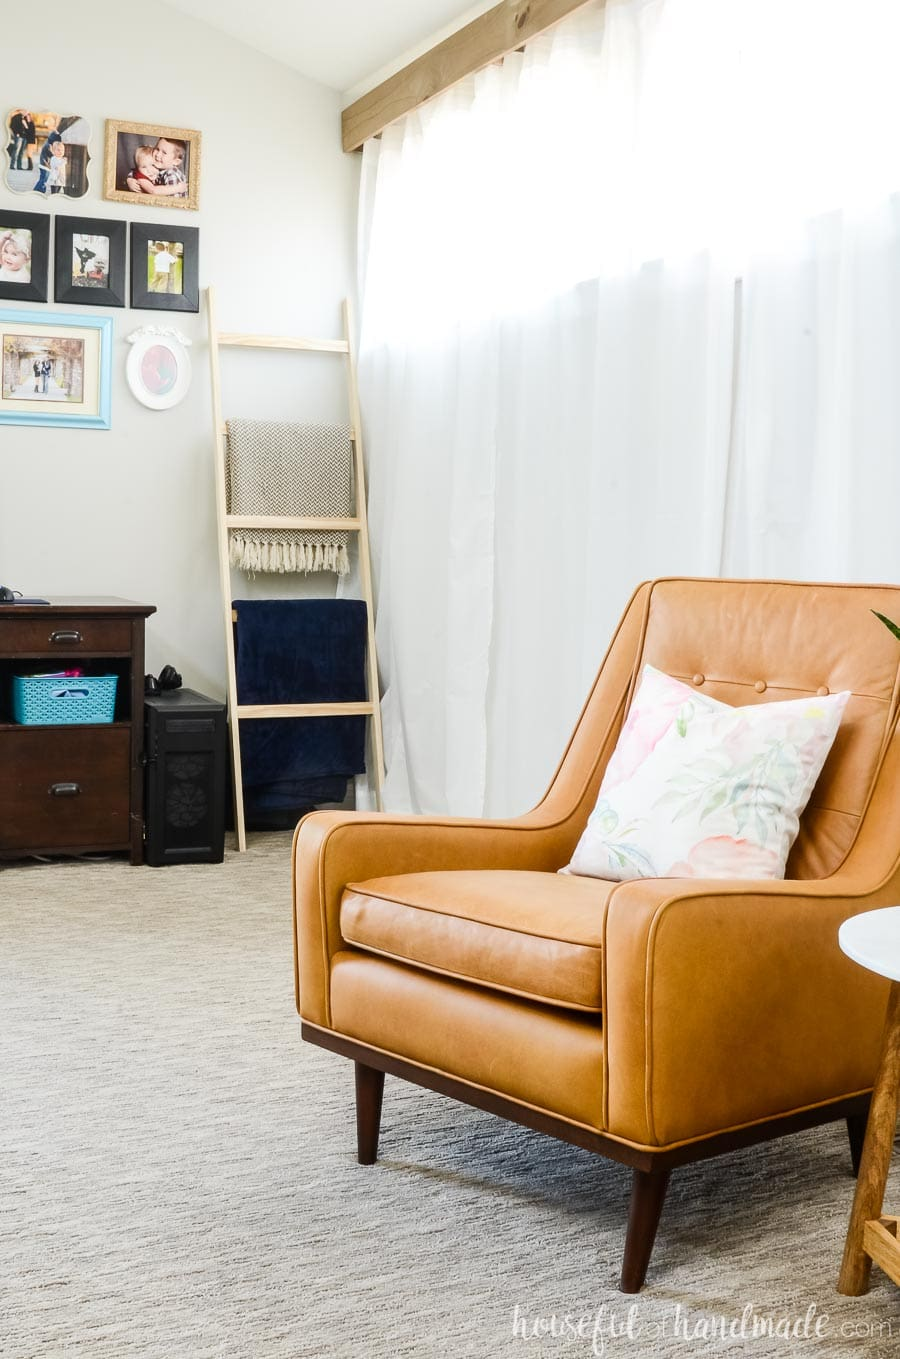 Tan armchair from Article.com in the living room with gallery wall and blanket ladder in the background. See how to easy it is to do a living room refresh for spring. Housefulofhandmade.com